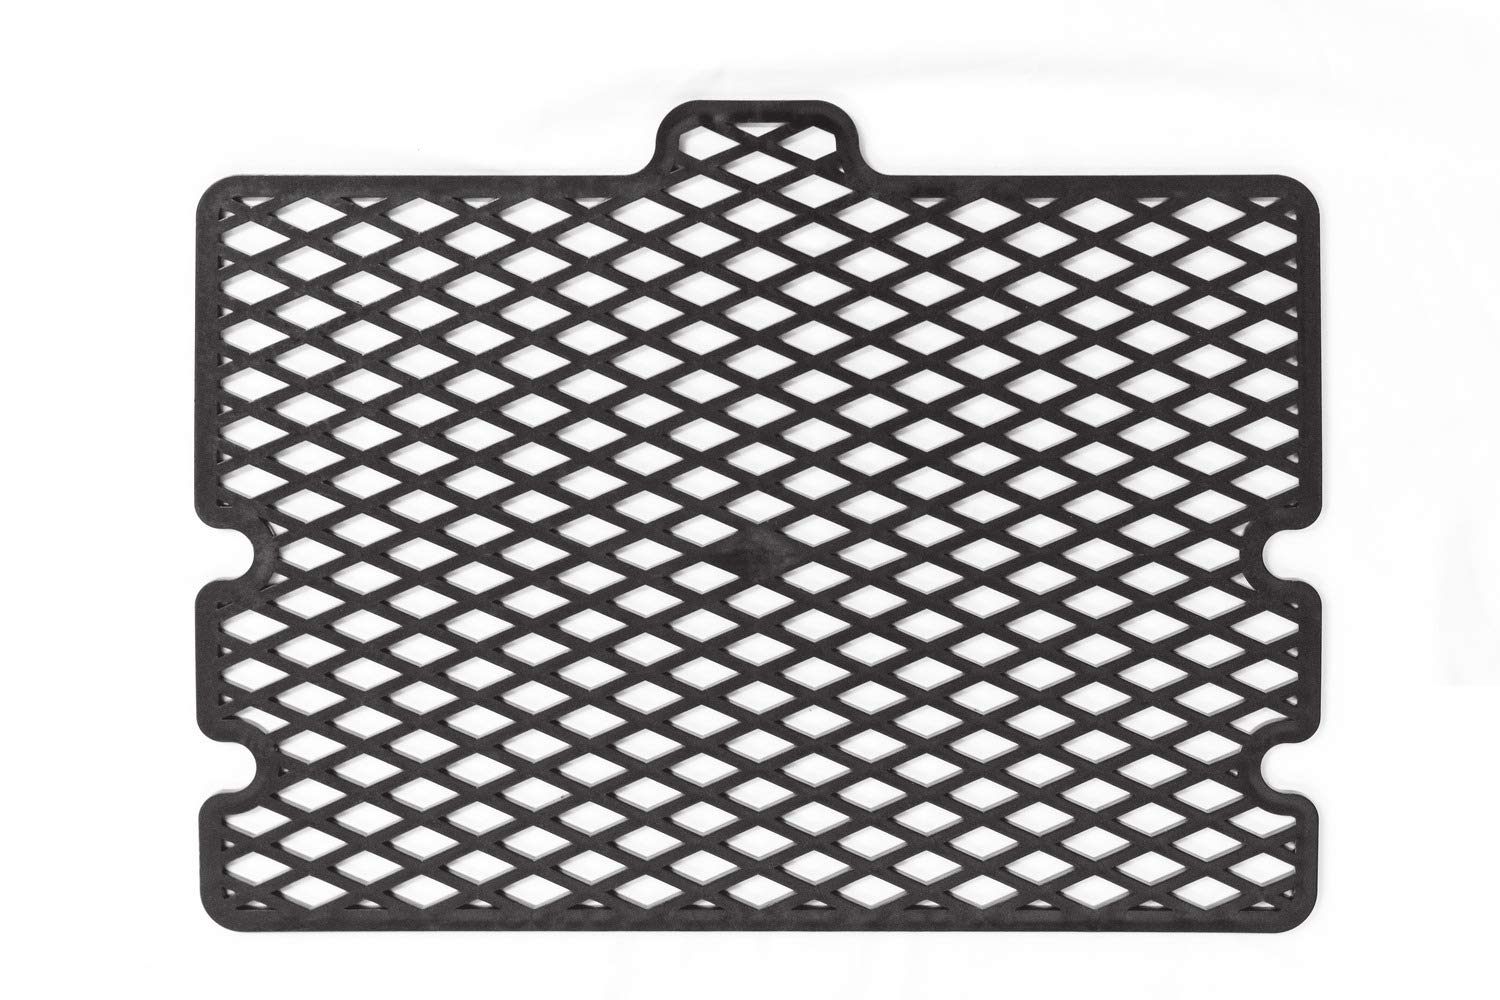 Agri-Fab 69128 85 lb Spreader Grate Kit, Black by Agri-Fab